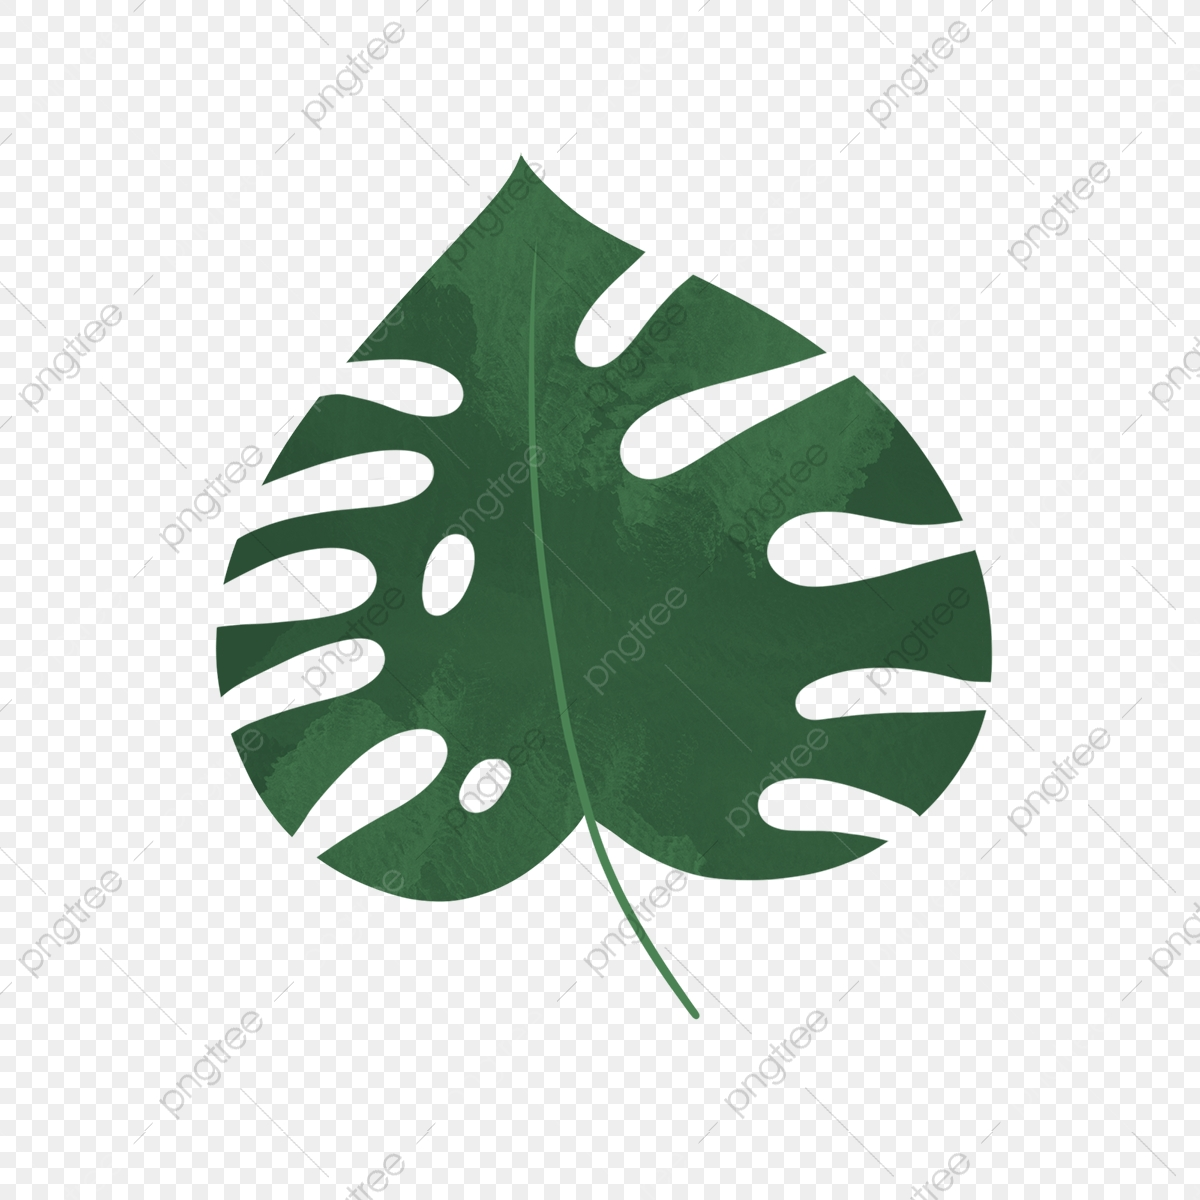 Hand Drawn Cute Green Tropical Leaf Leaf Drawing Nature Png Transparent Clipart Image And Psd File For Free Download